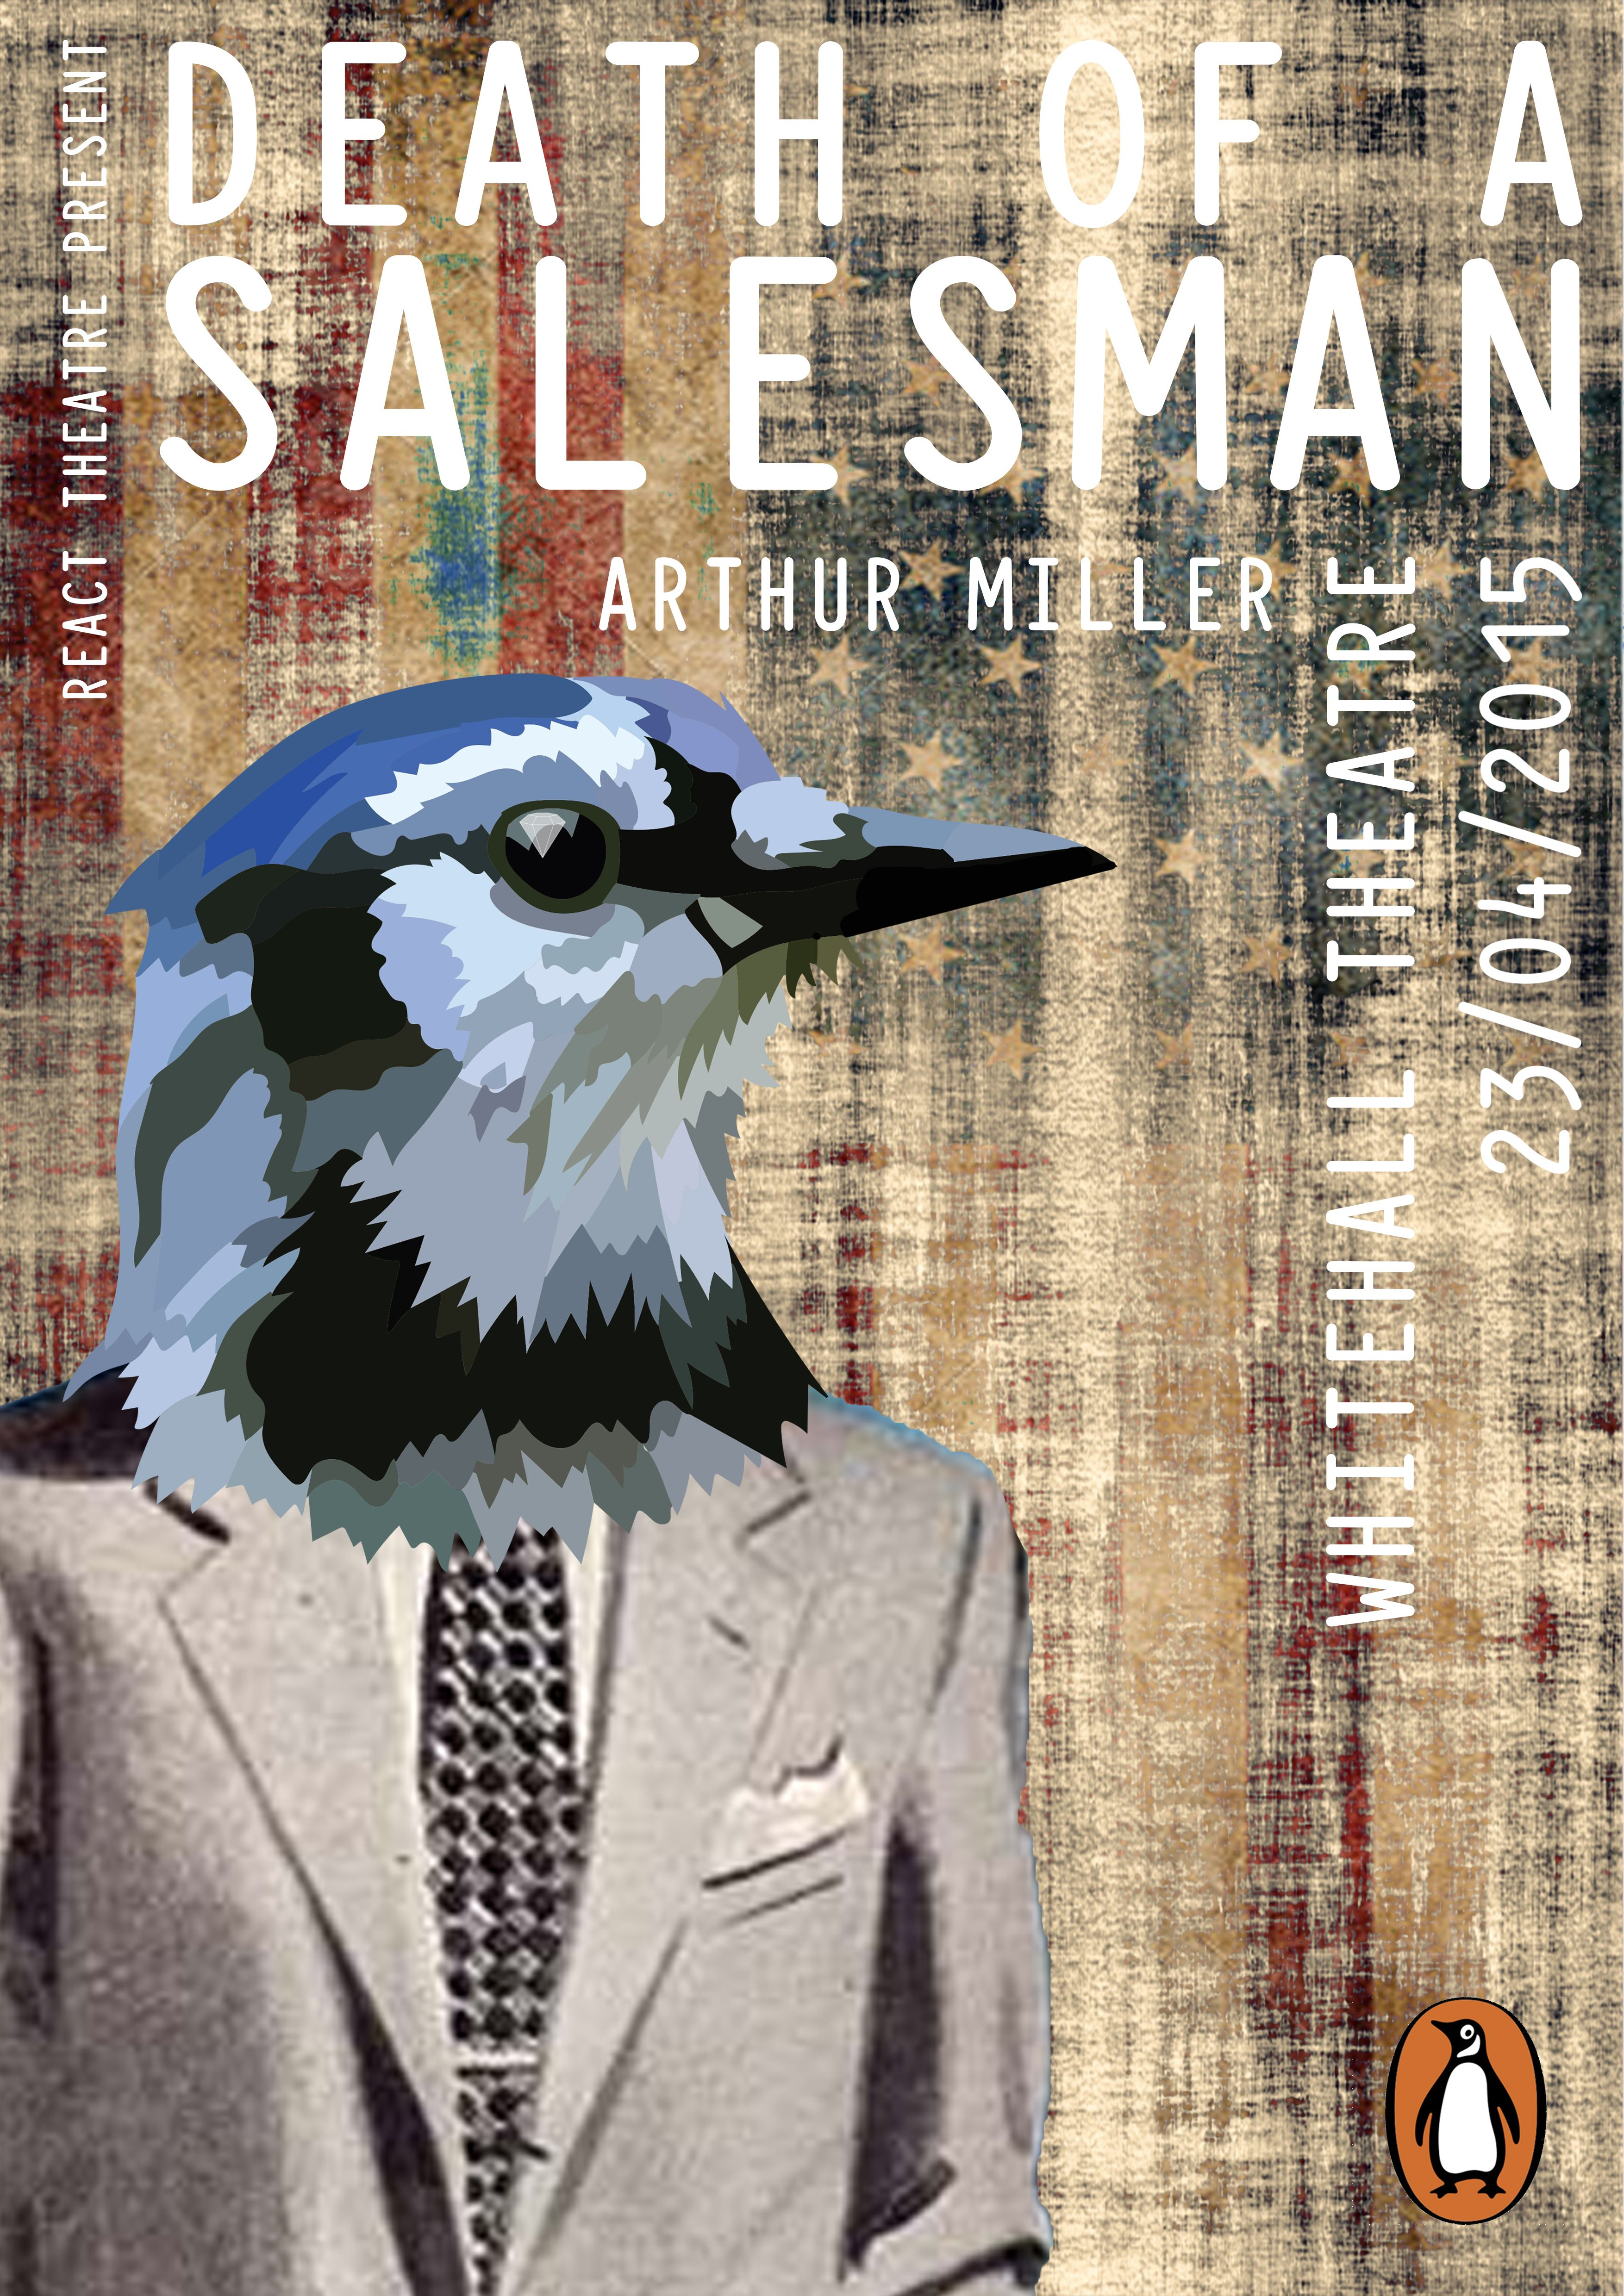 Penguin Screenplay project. Promotional poster for Arthur Millers 'Death of a Salesman'.